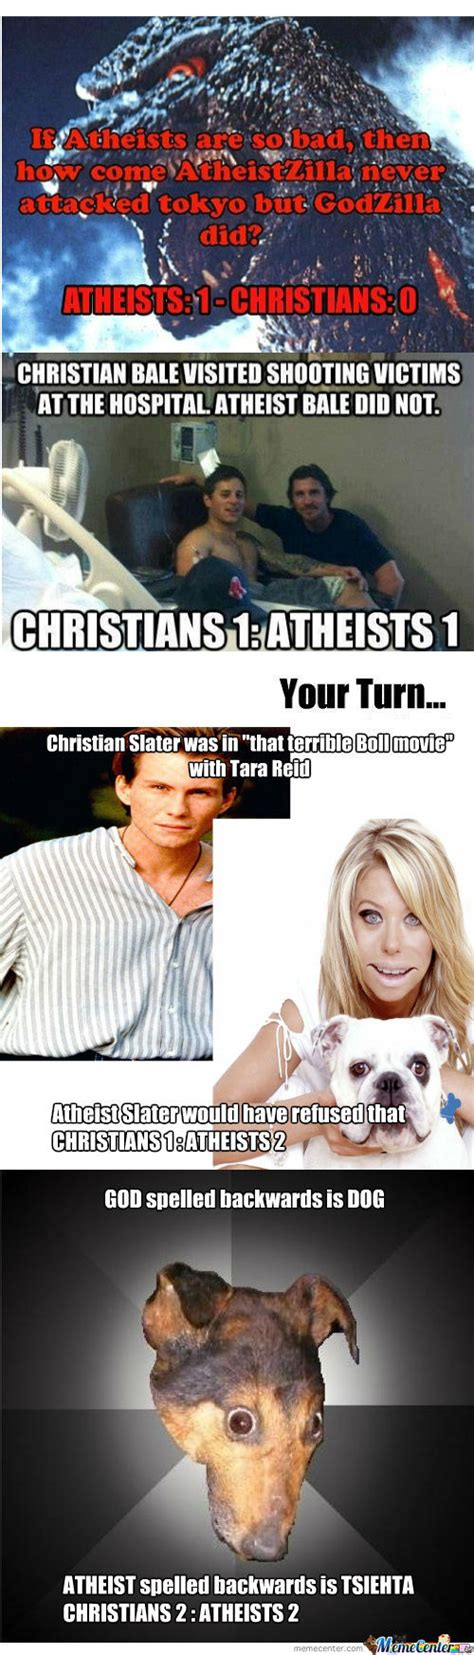 Atheist Vs Christian Meme - rmx christians vs atheist by zeeelor meme center